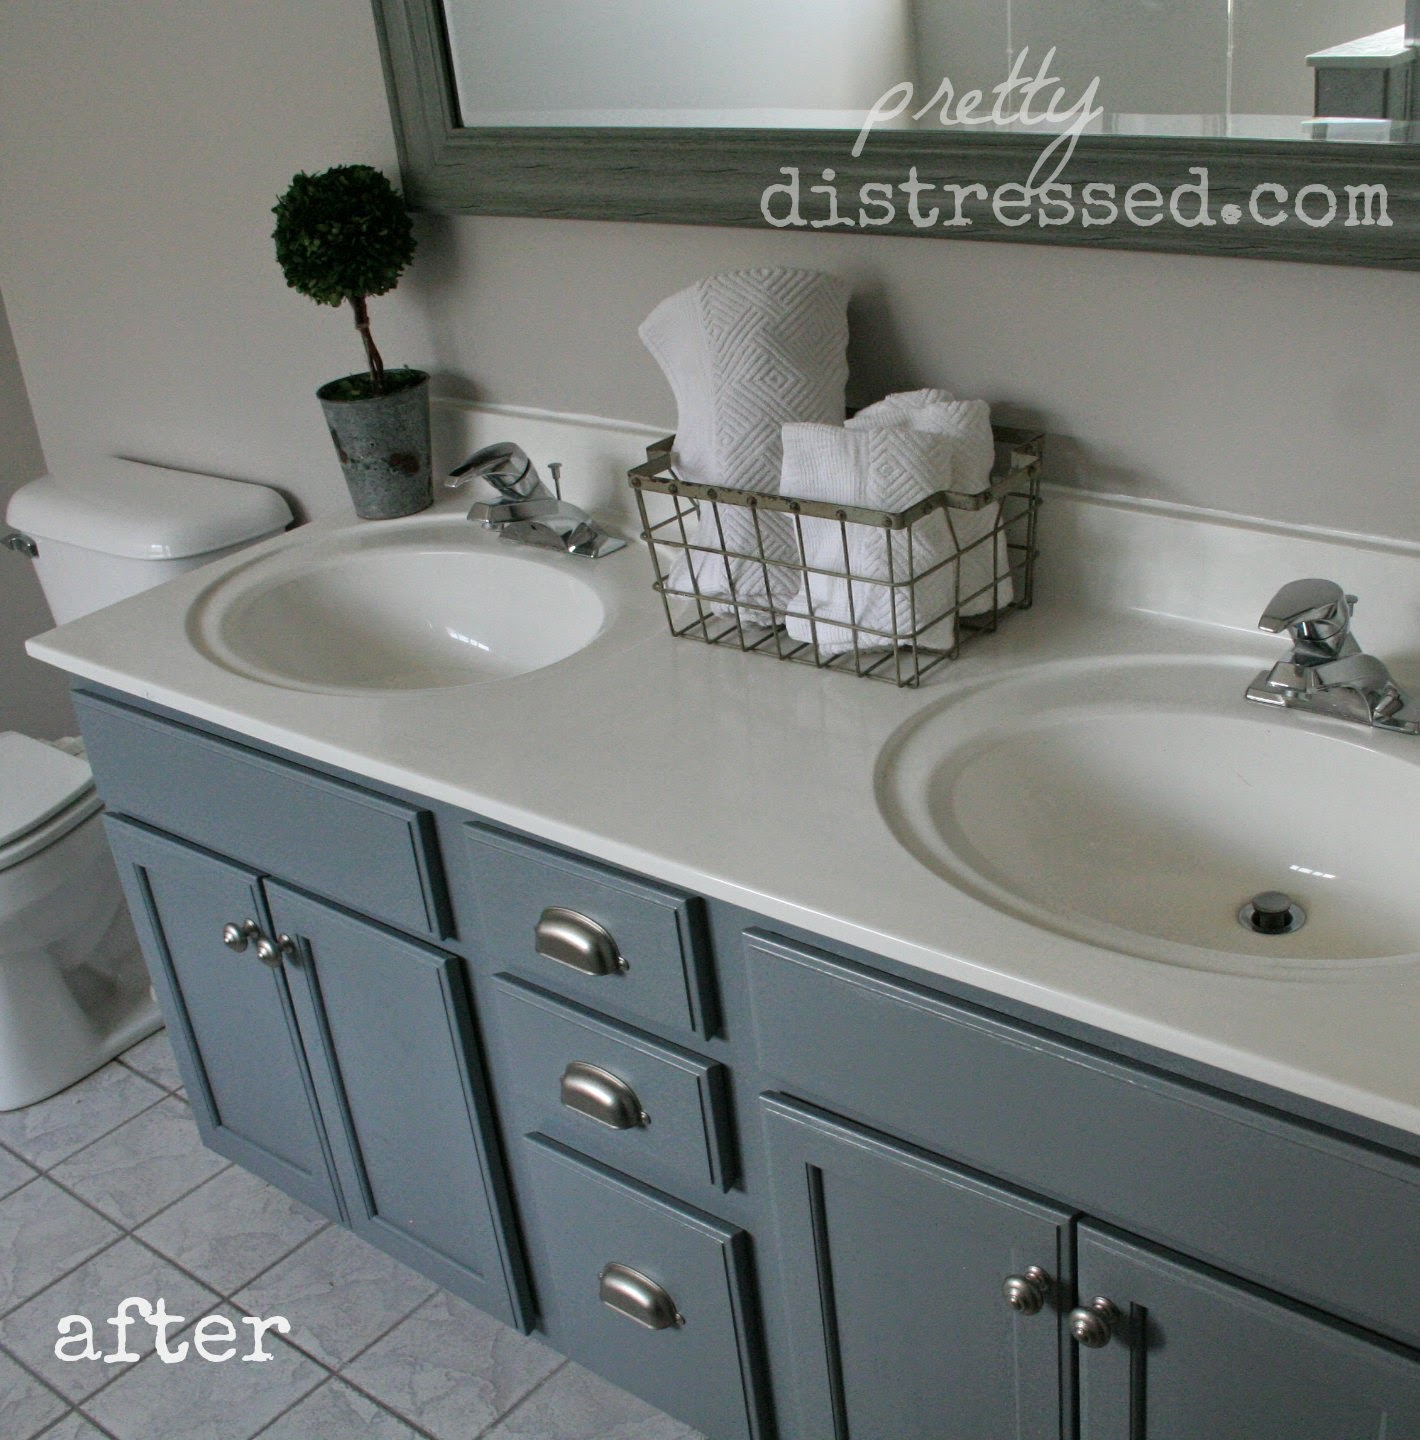 Painting And Distressing Bathroom Cabinets pretty distressed: bathroom vanity makeover with latex paint